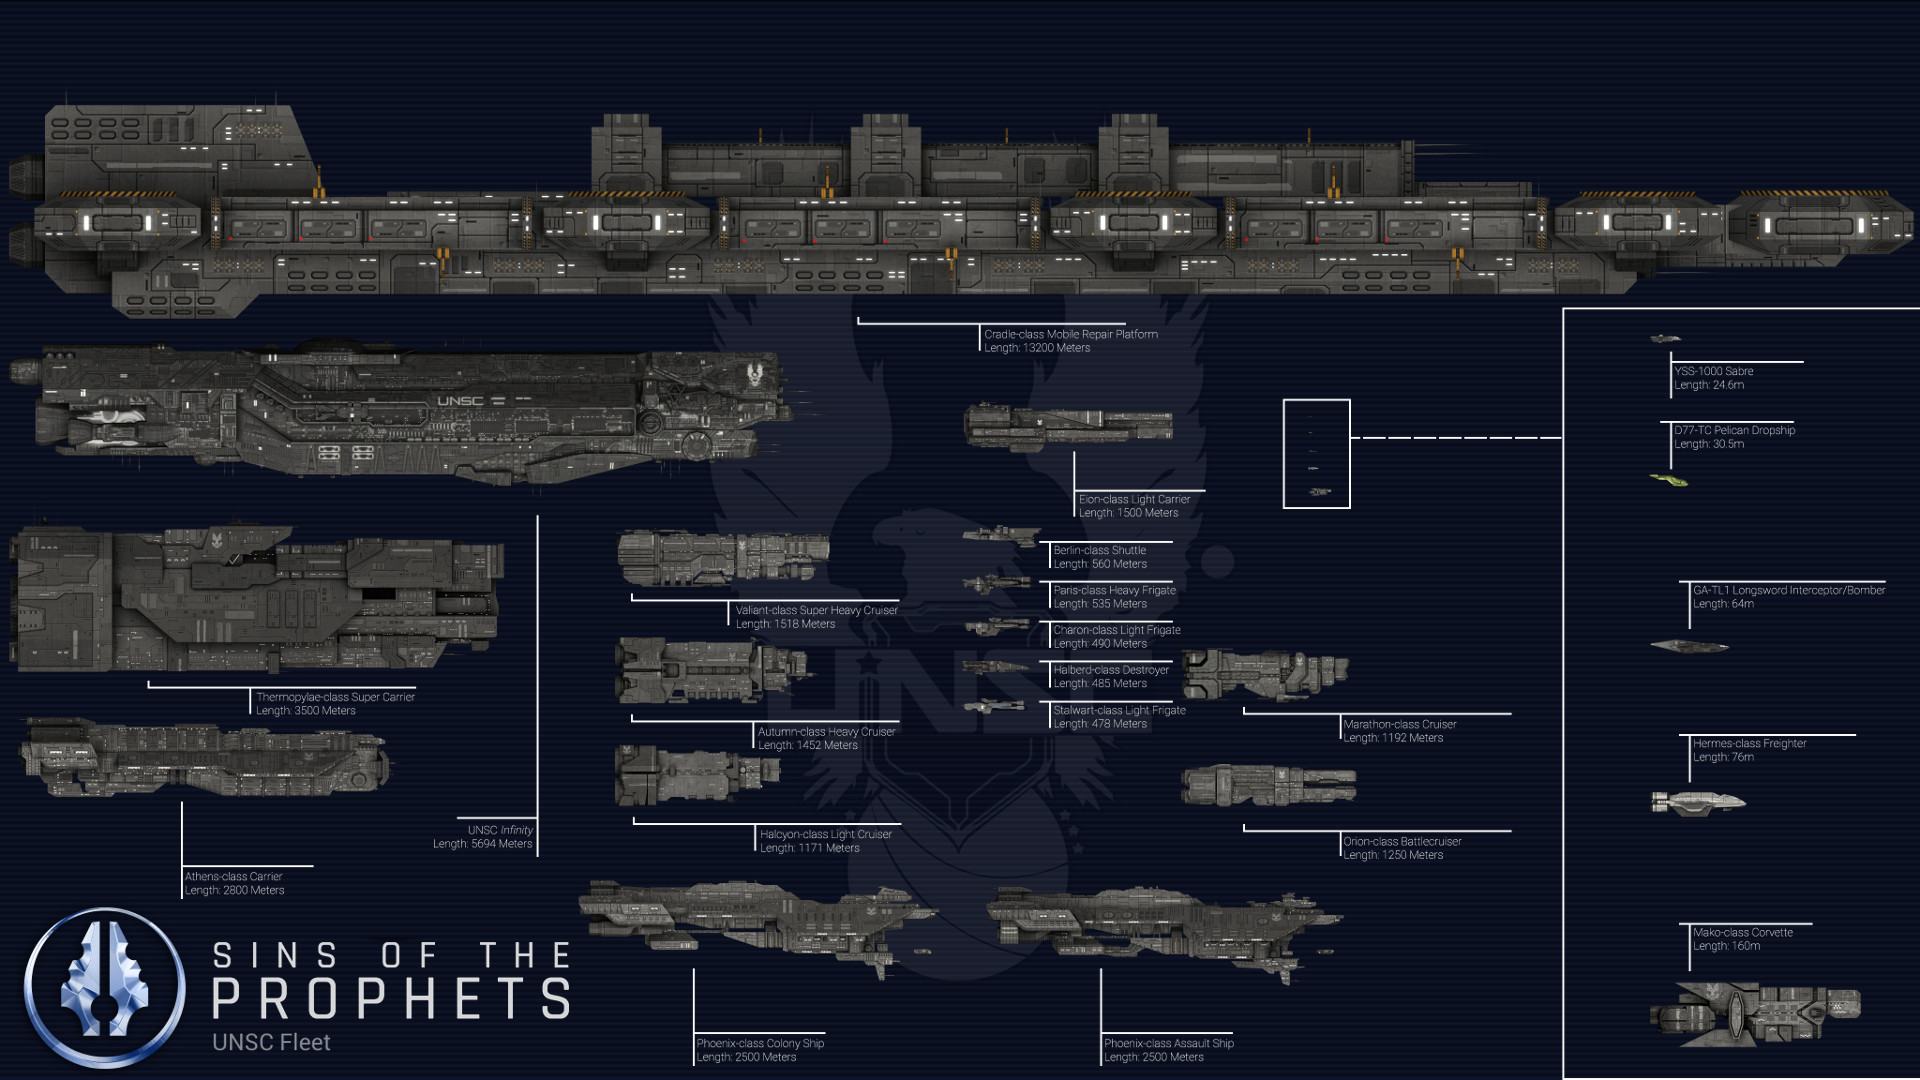 UNSC Fleet Scale image – Sins of the Prophets mod for Sins of a Solar Empire